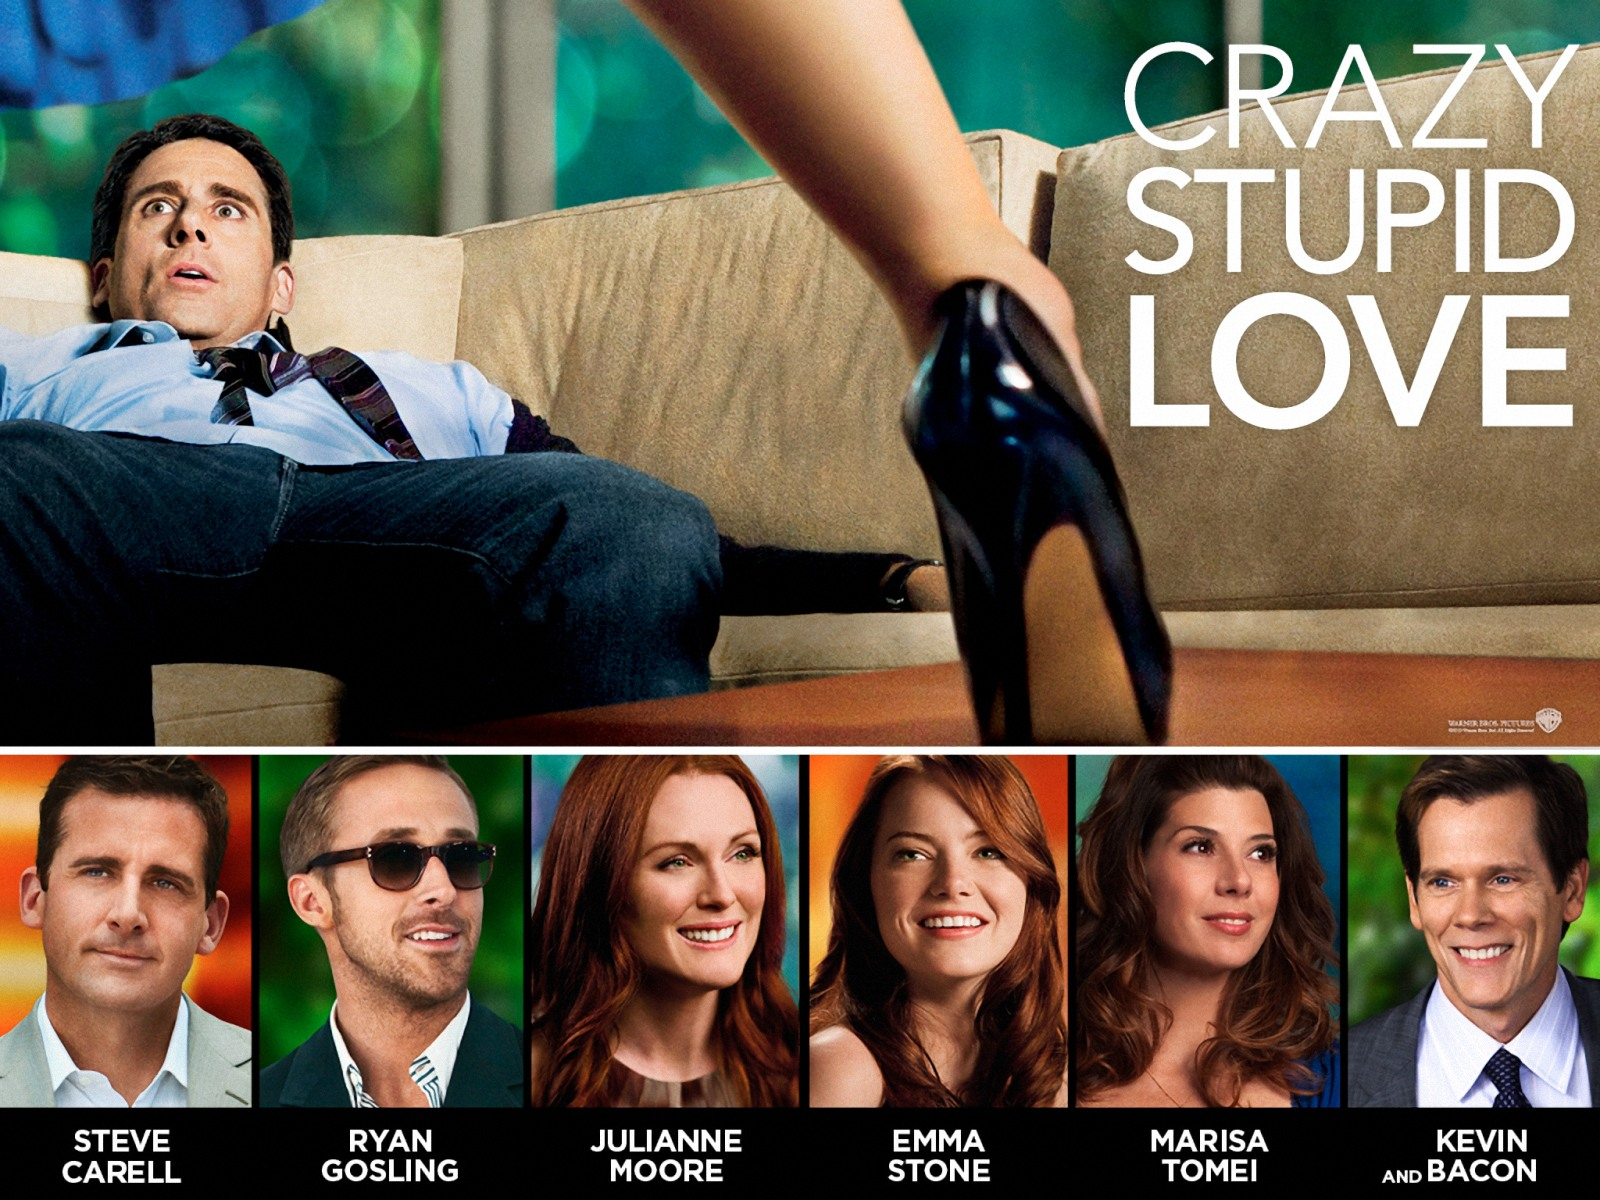 crazy-stupid-love-poster_90839-1600x1200